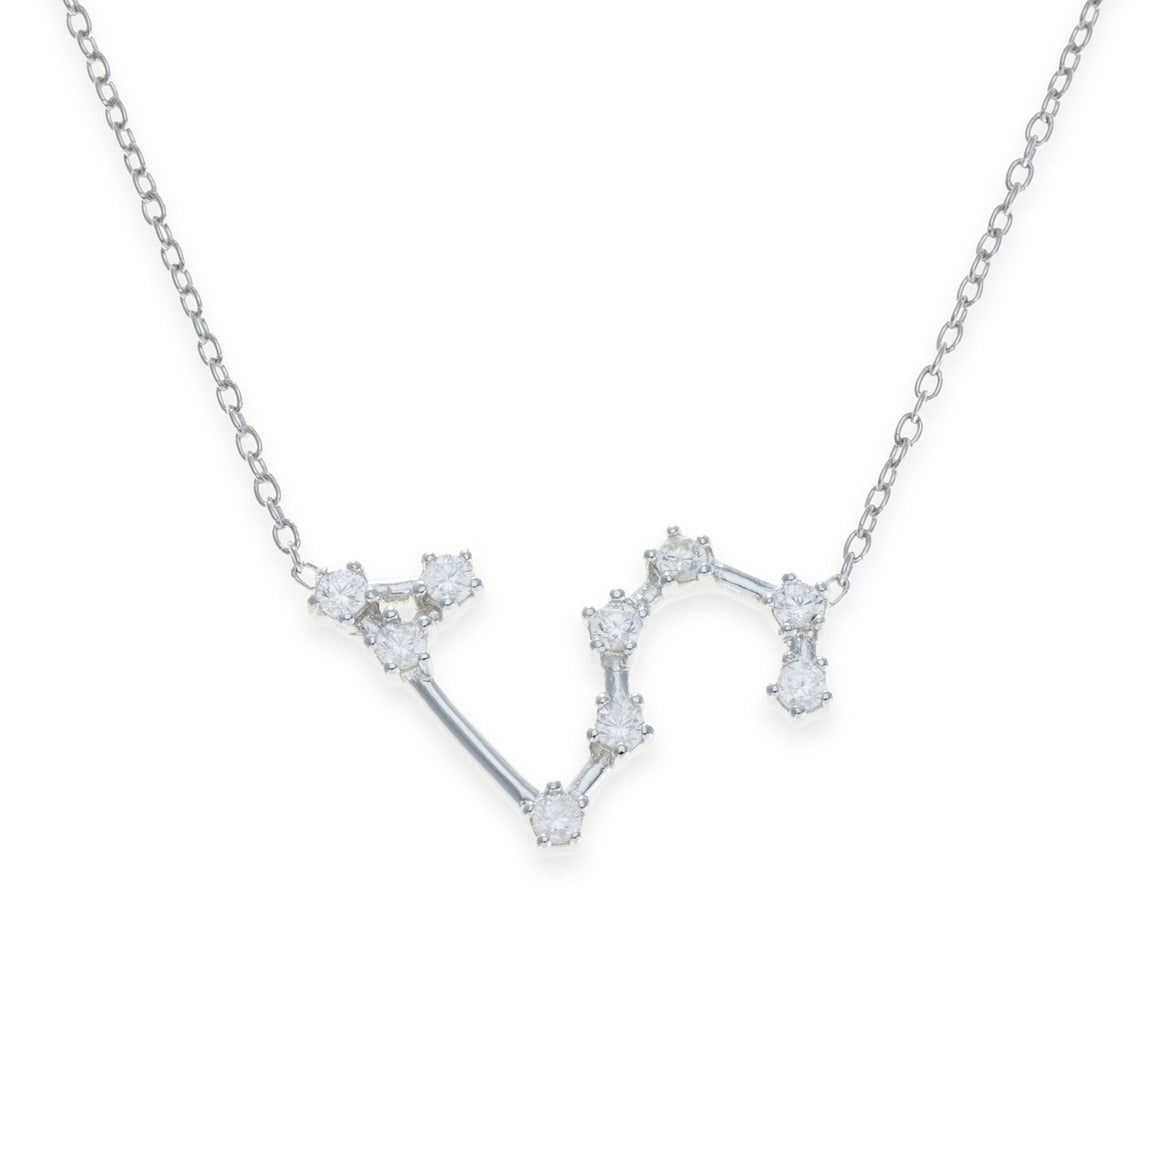 Sterling Silver Leo Necklace | Kith & Kin | Wish Upon a Star Collection